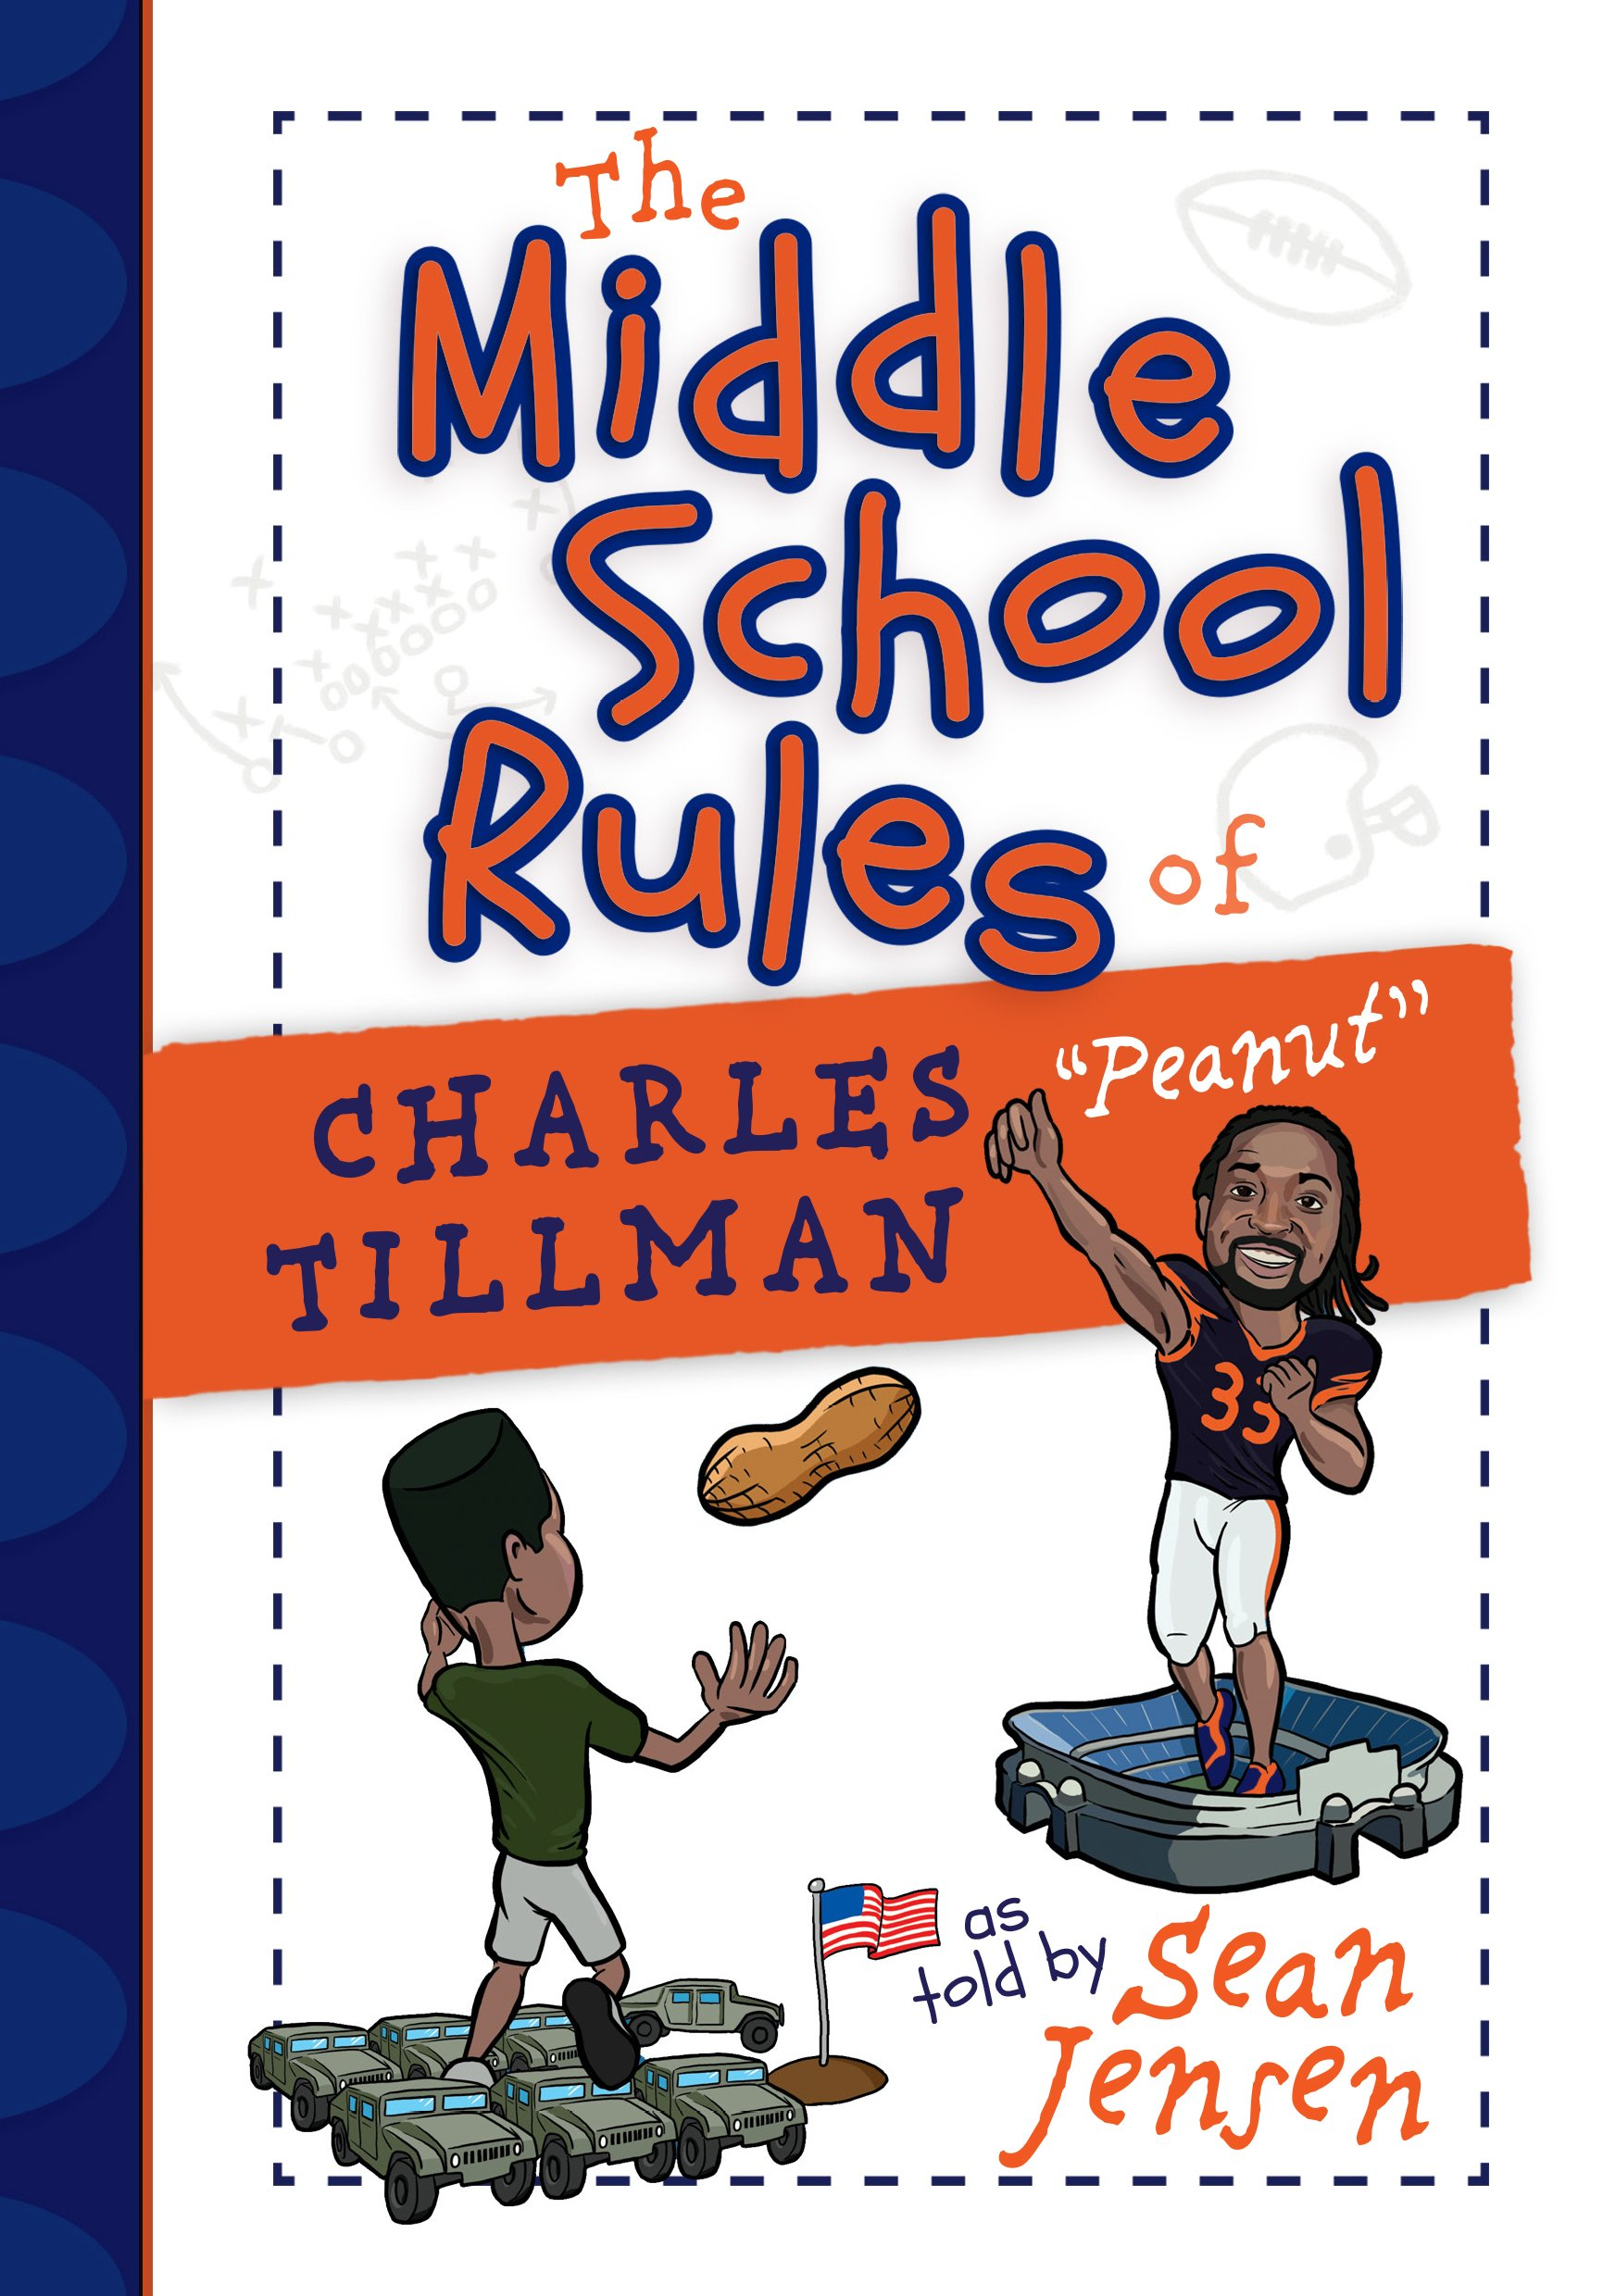 The Middle School Rules of Charles Tillman: Peanut